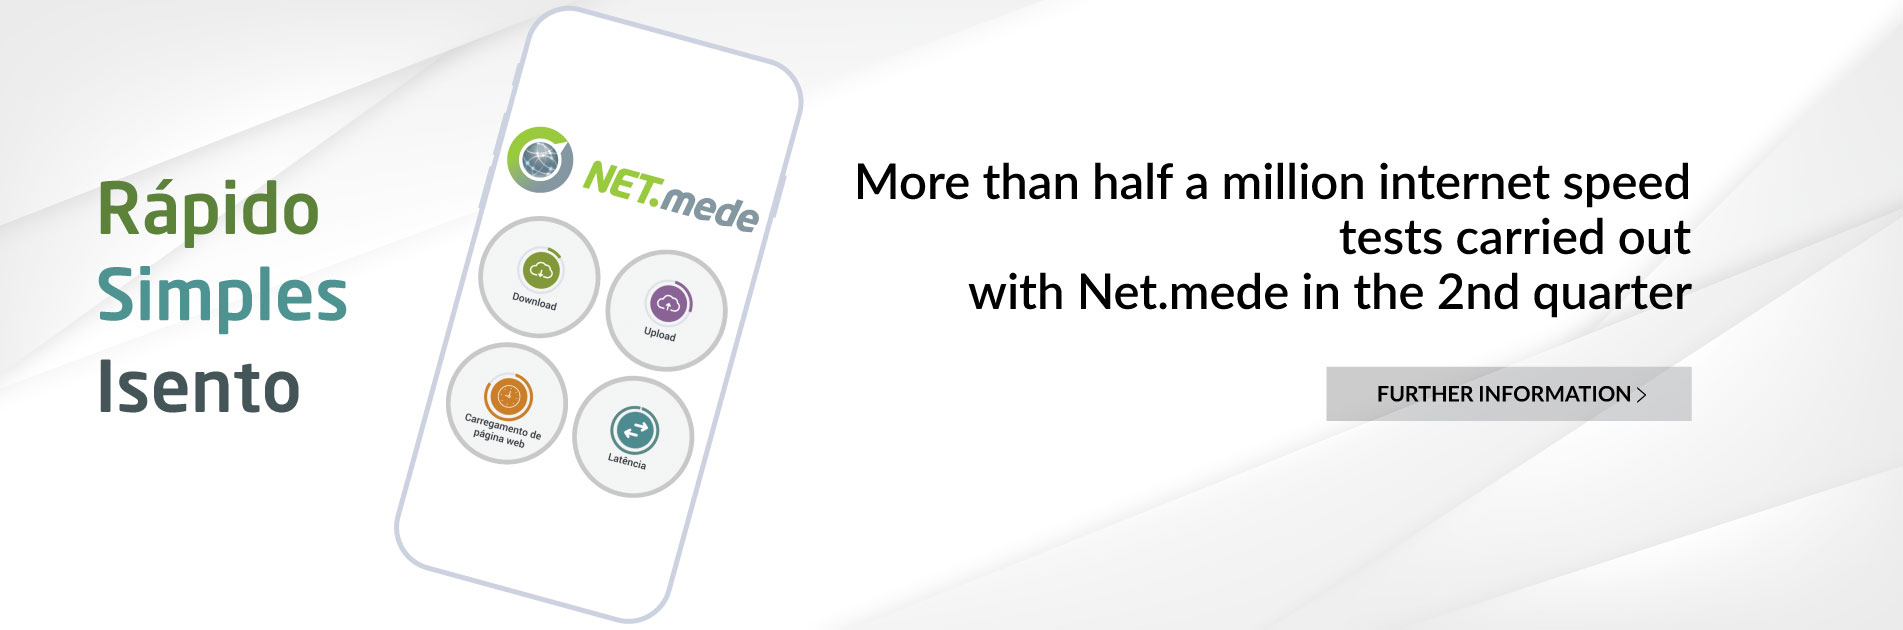 More than half a million internet speed tests carried out with Net.mede in the 2nd quarter